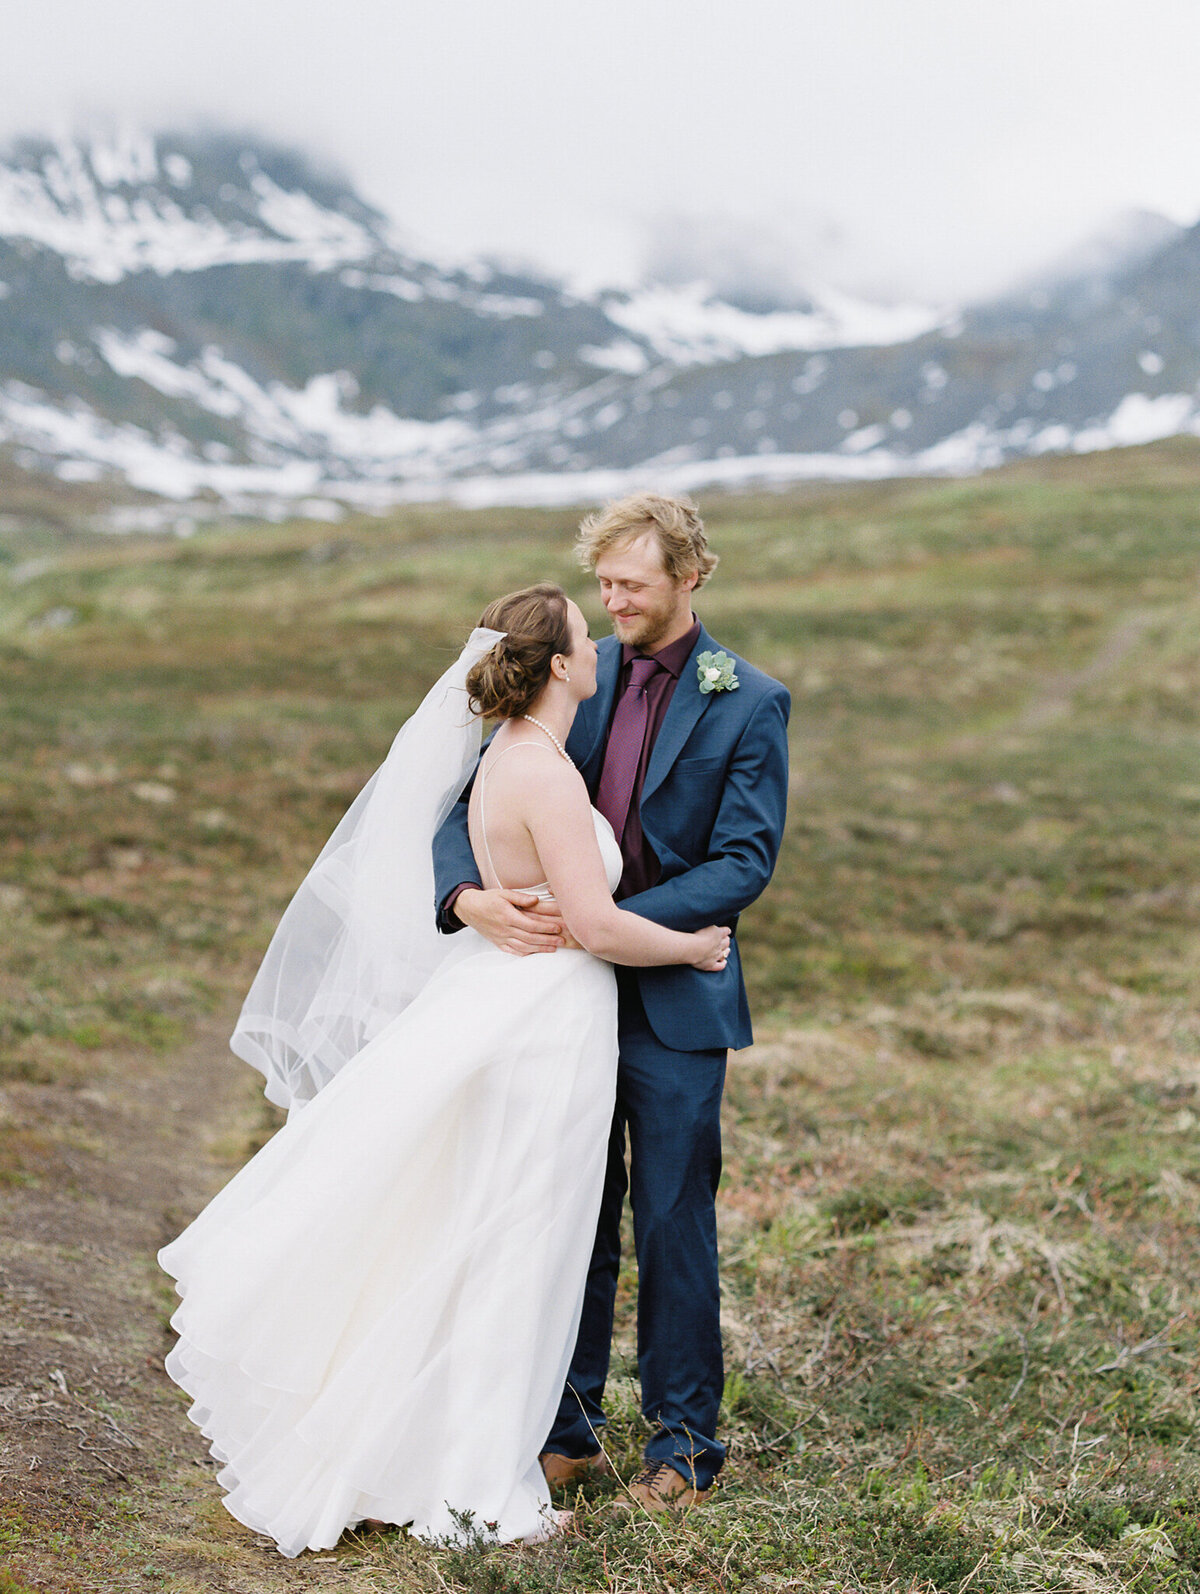 Hatcher Pass bride and groom